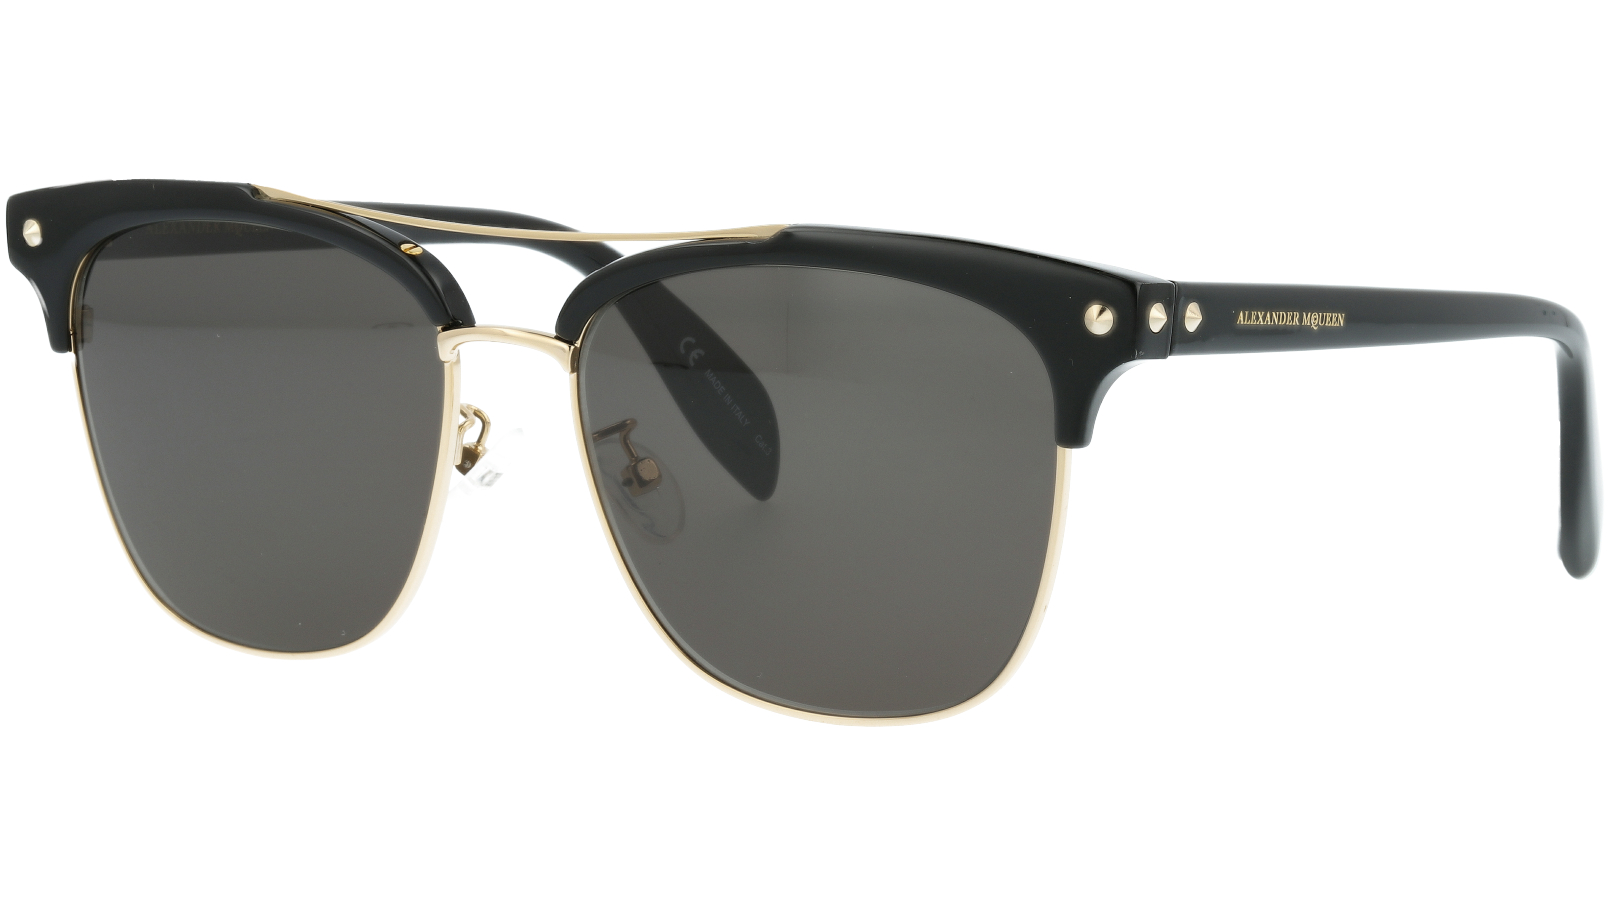 ALEXANDER MCQUEEN AM0126SK 001 57 BLACK Sunglasses